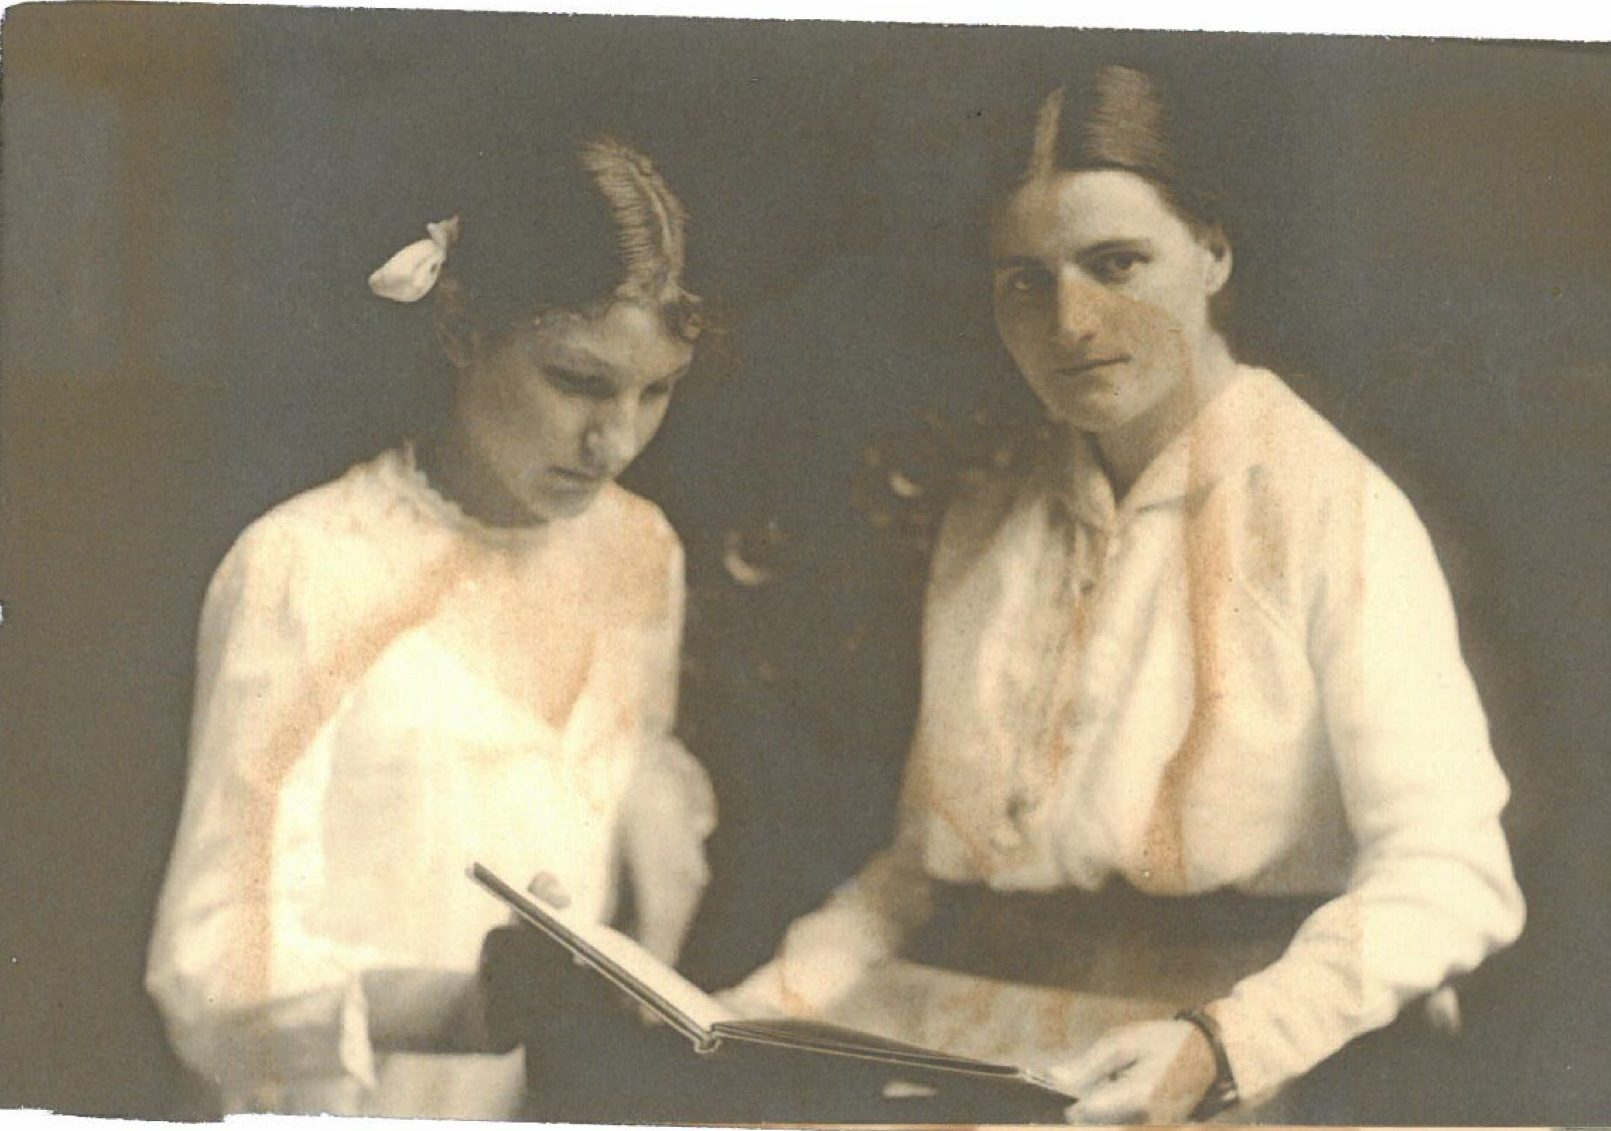 Mme de Holle and unknown person. Photographs from the Hergest Trust Archive and reproduced with their kind permission